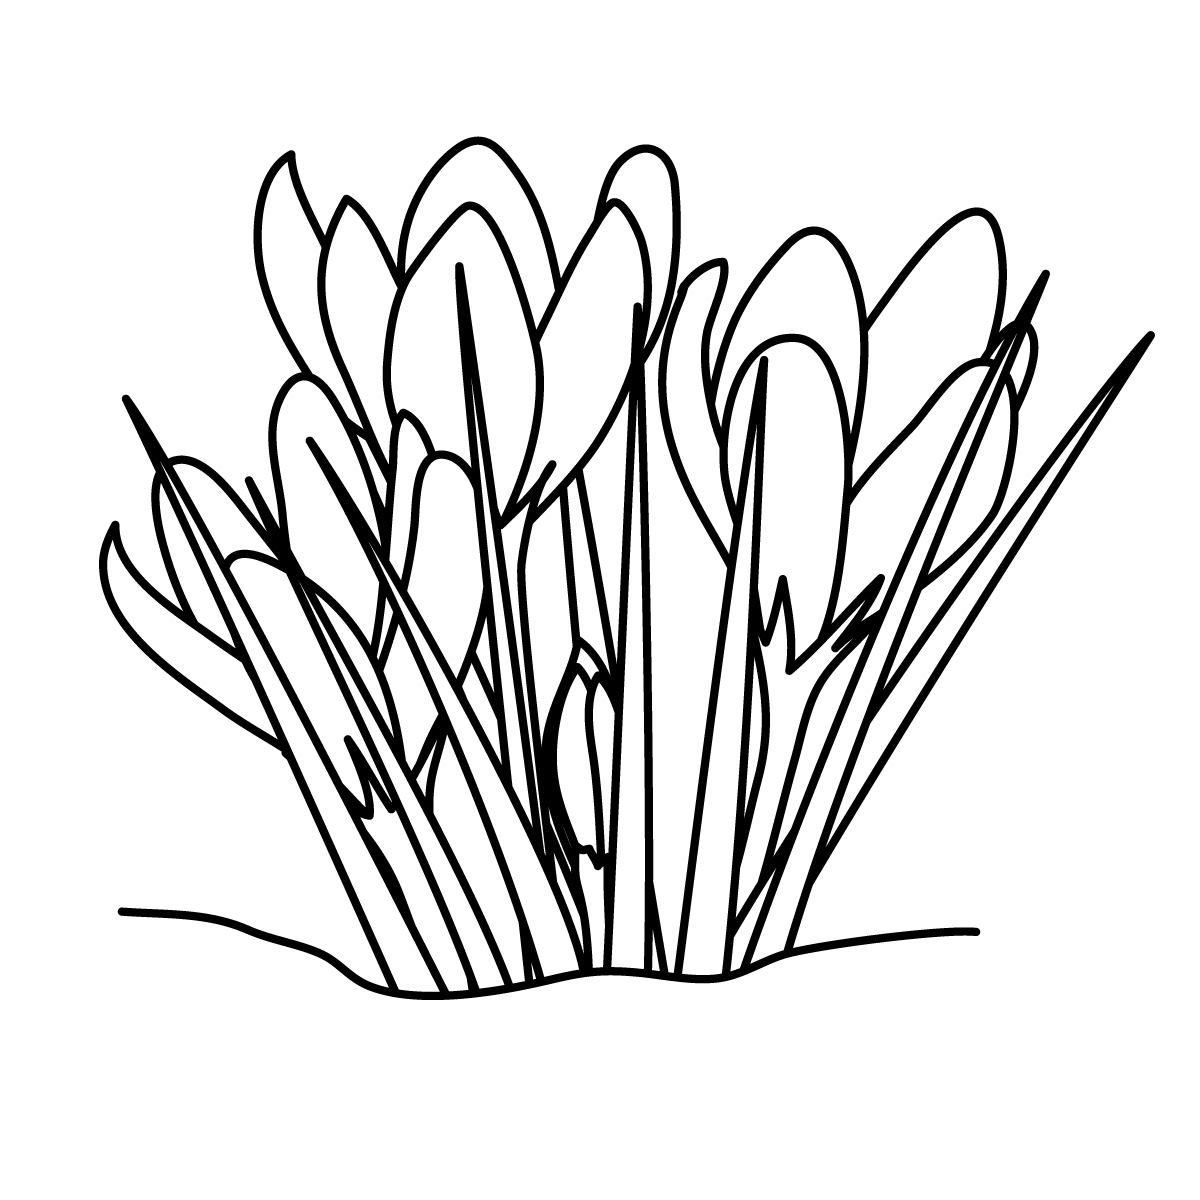 hight resolution of grass black and white grass clipart line drawing pencil and in color grass